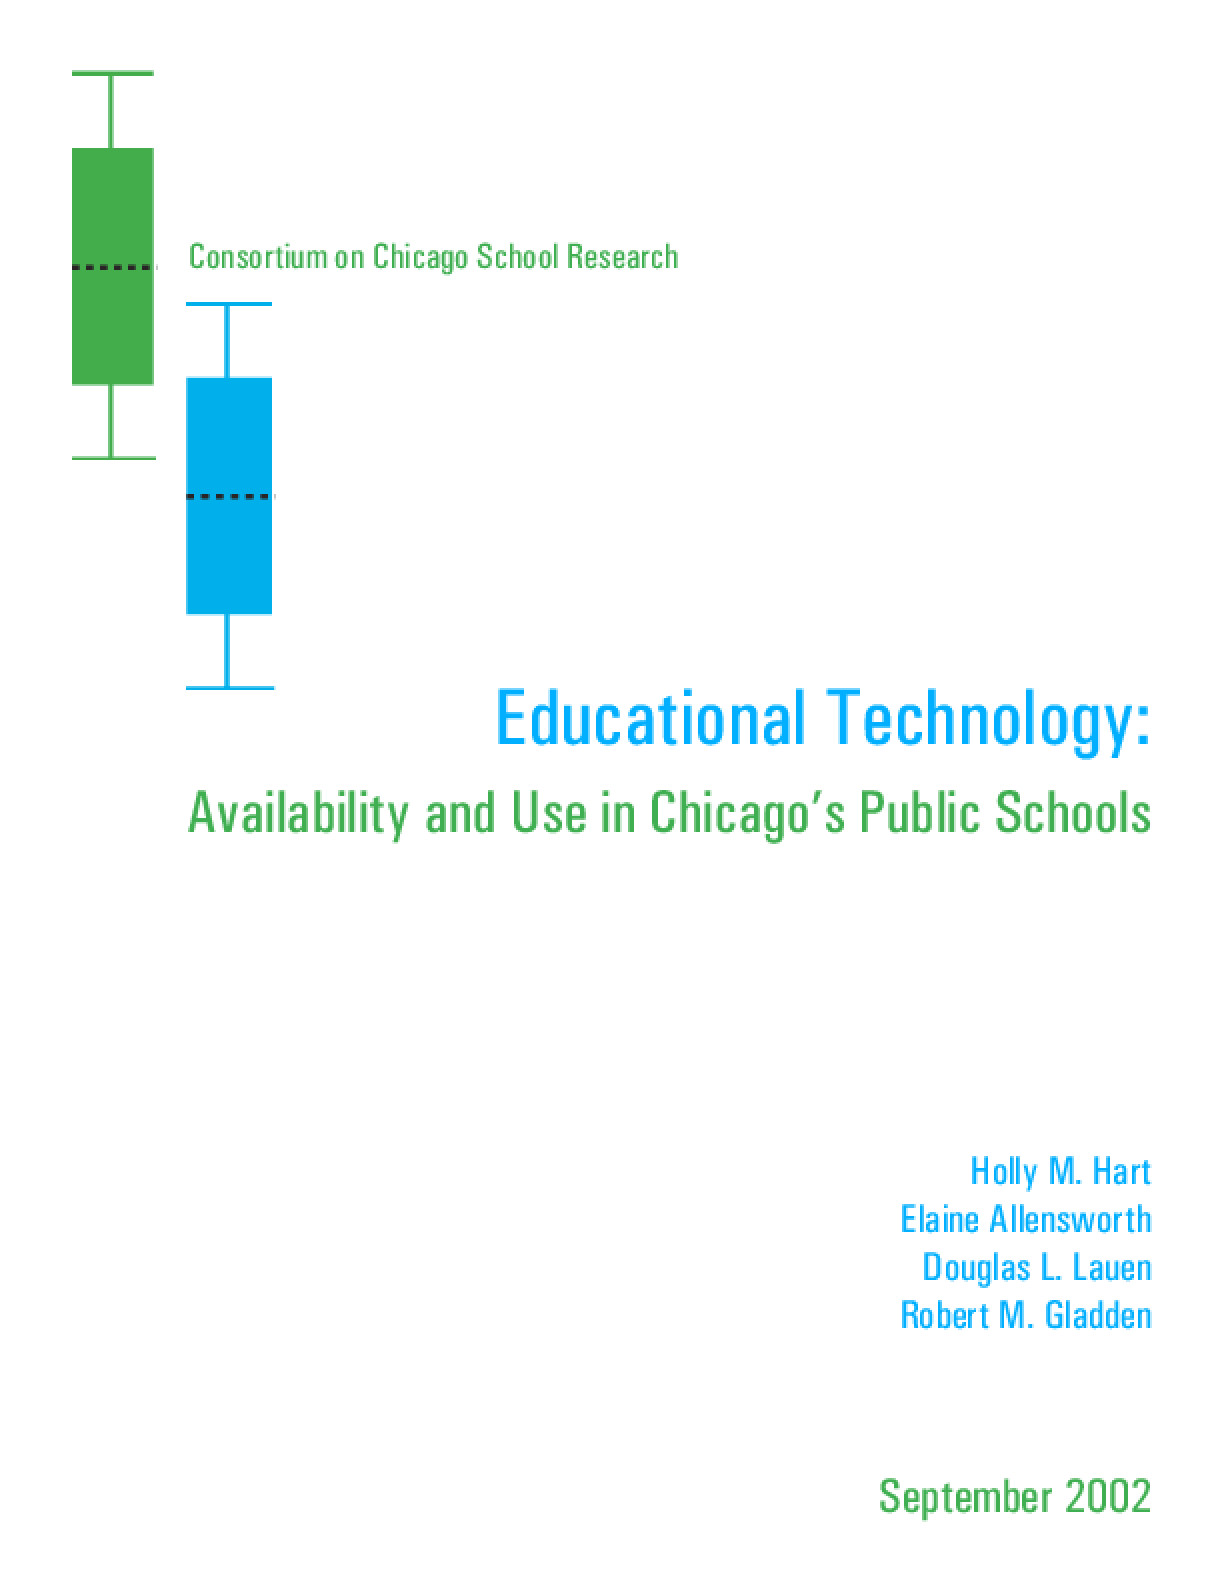 Educational Technology: Availability and Use in Chicago's Public Schools